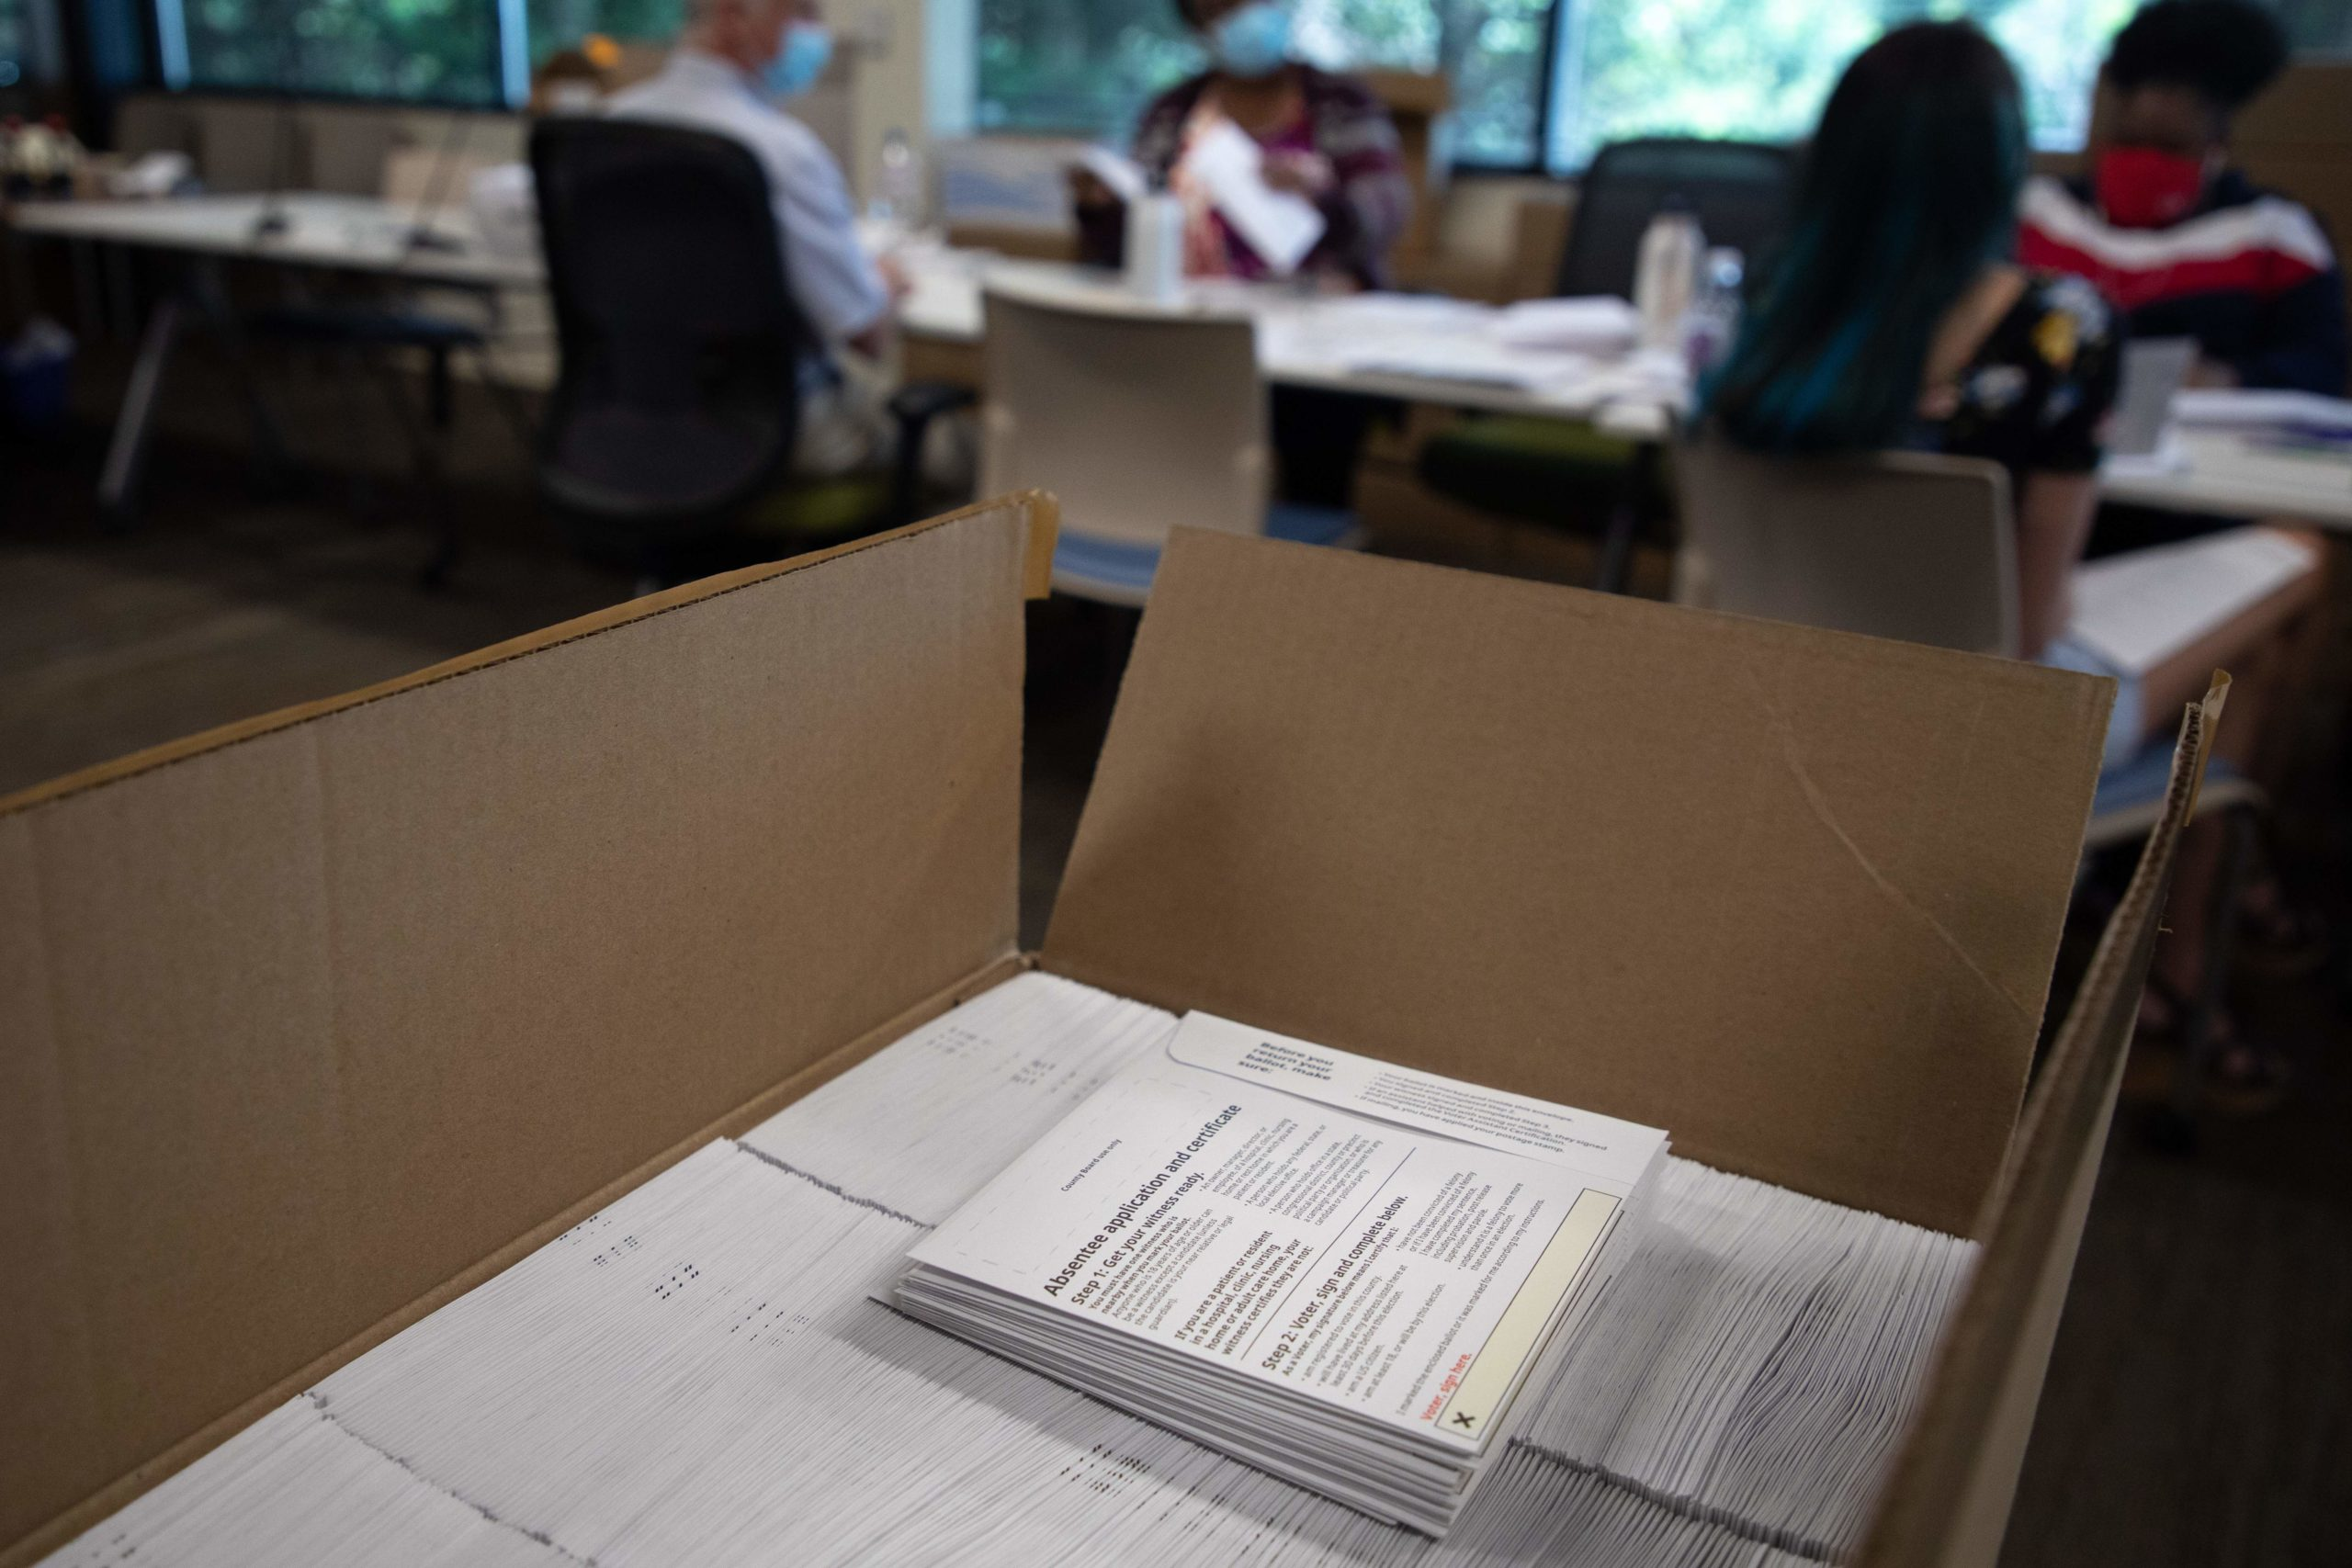 Paperwork sits in a box as absentee ballot election workers stuff ballot applications at the Mecklenburg County Board of Elections office in Charlotte, North Carolina on September 4, 2020. (LOGAN CYRUS/AFP via Getty Images)